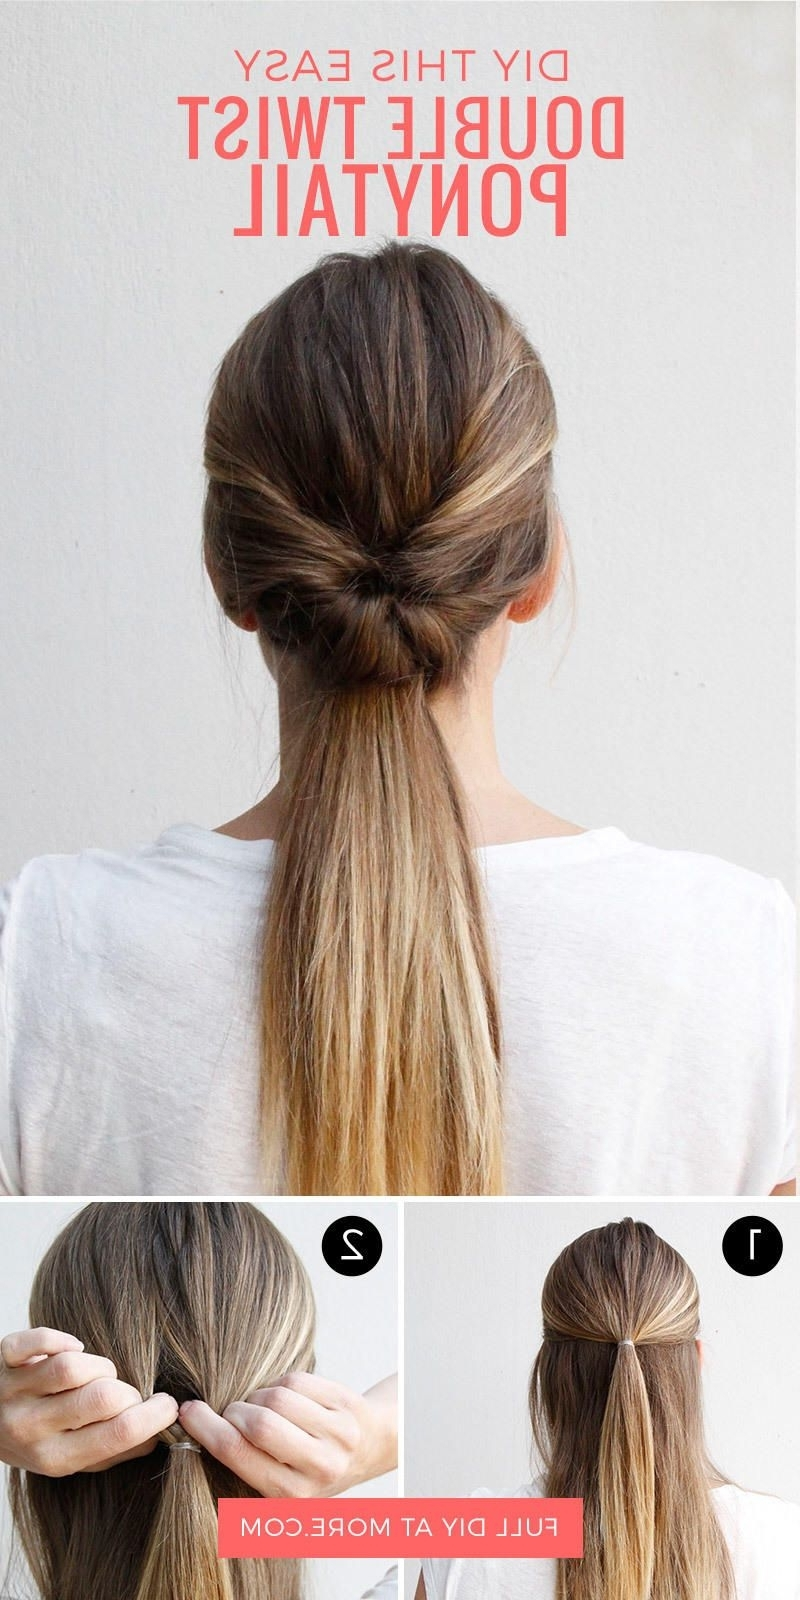 This Double Twist Ponytail Is The Perfect Five Minute Hairstyle In Within Current Double Tied Pony Hairstyles (View 2 of 20)